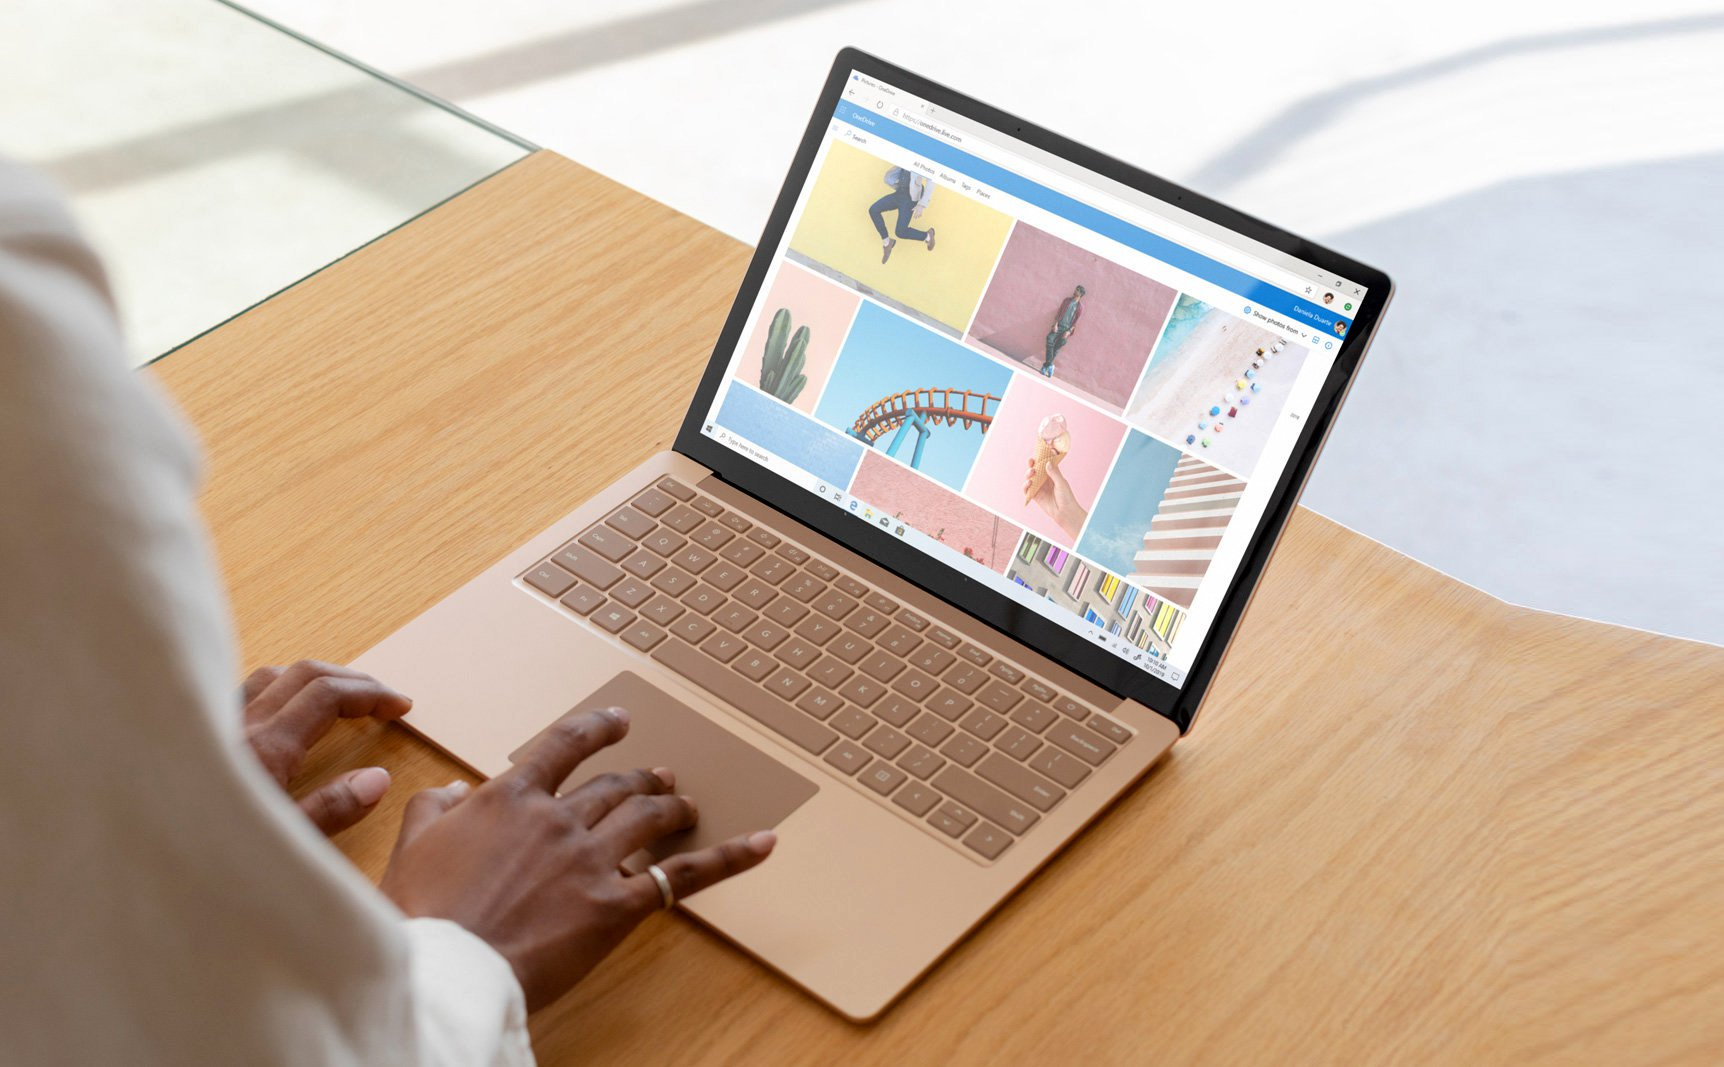 Loading cover_home_surface_laptop_3.jpg…